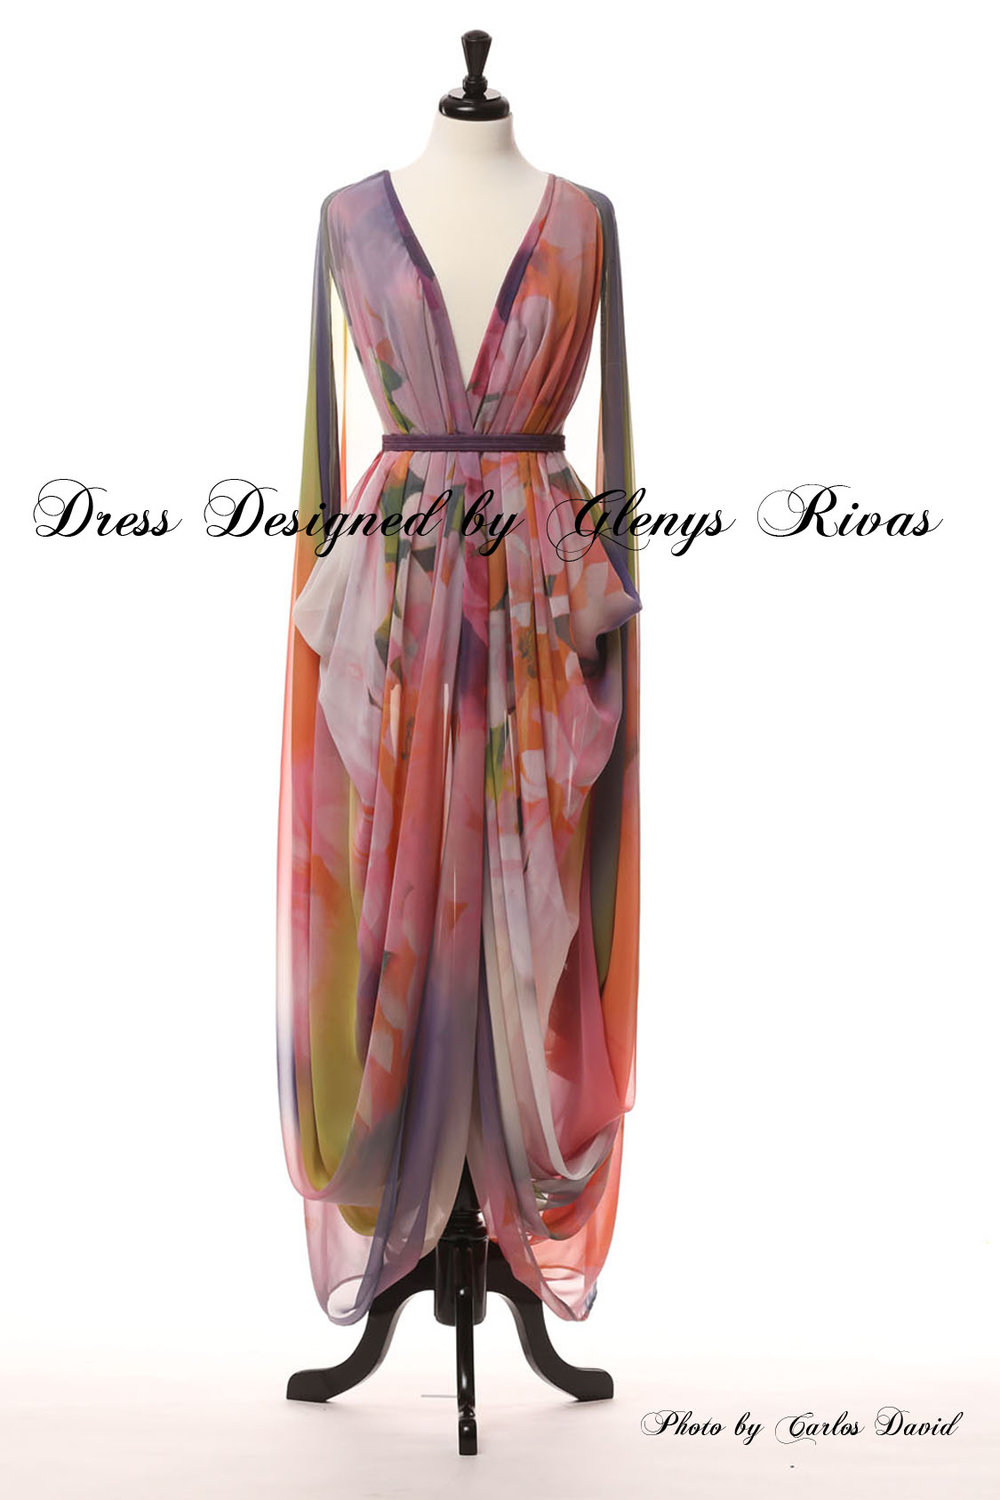 Glenys Dress No. 1.jpg